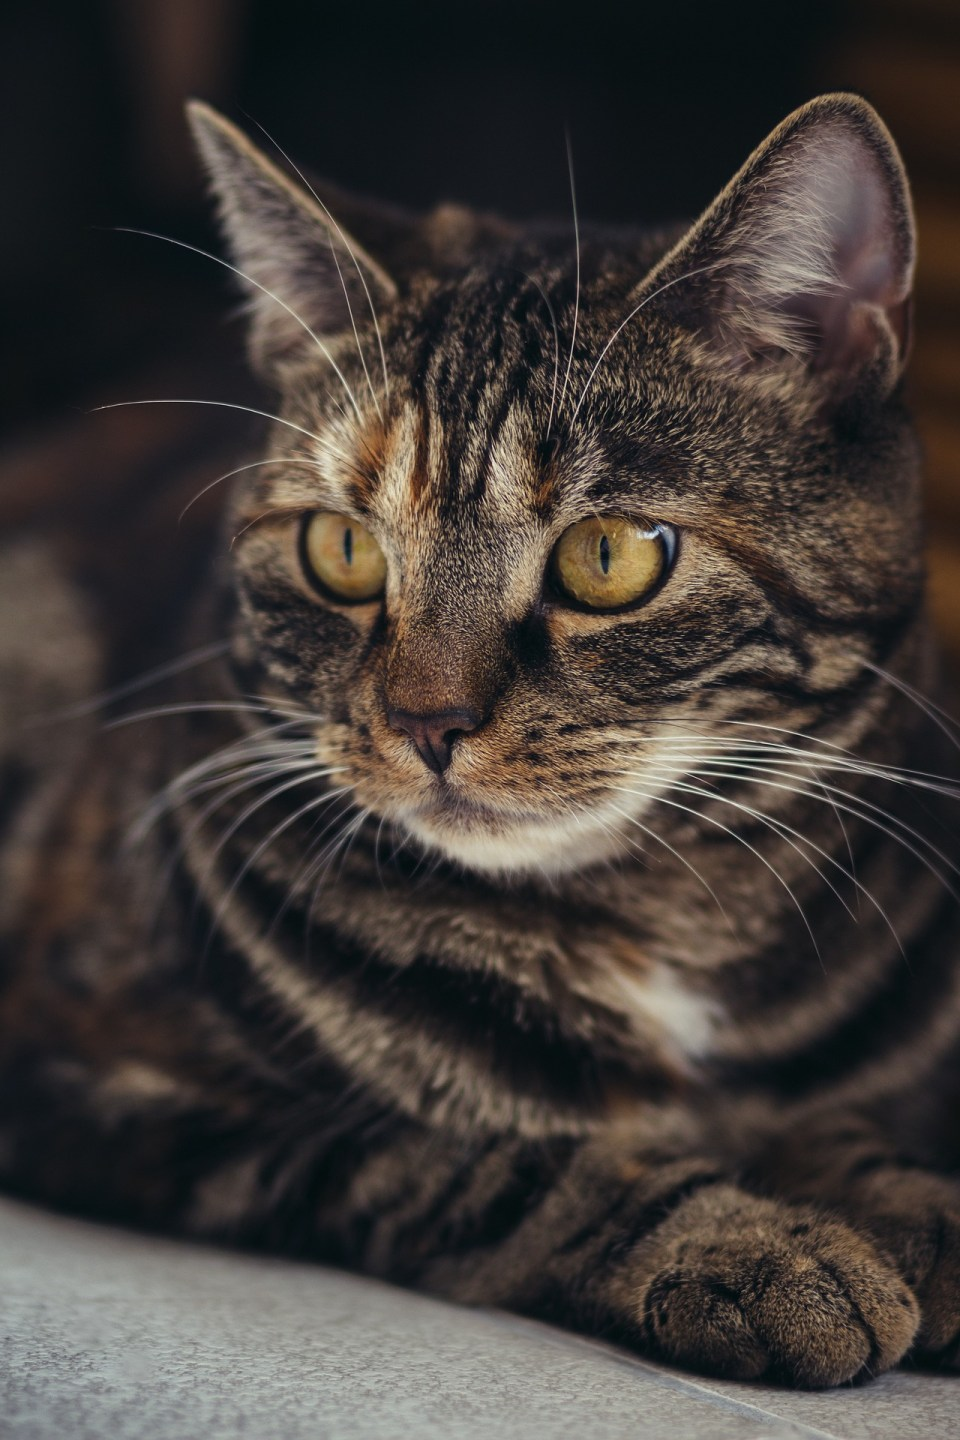 striped cat with yellow eyes looking out into distance